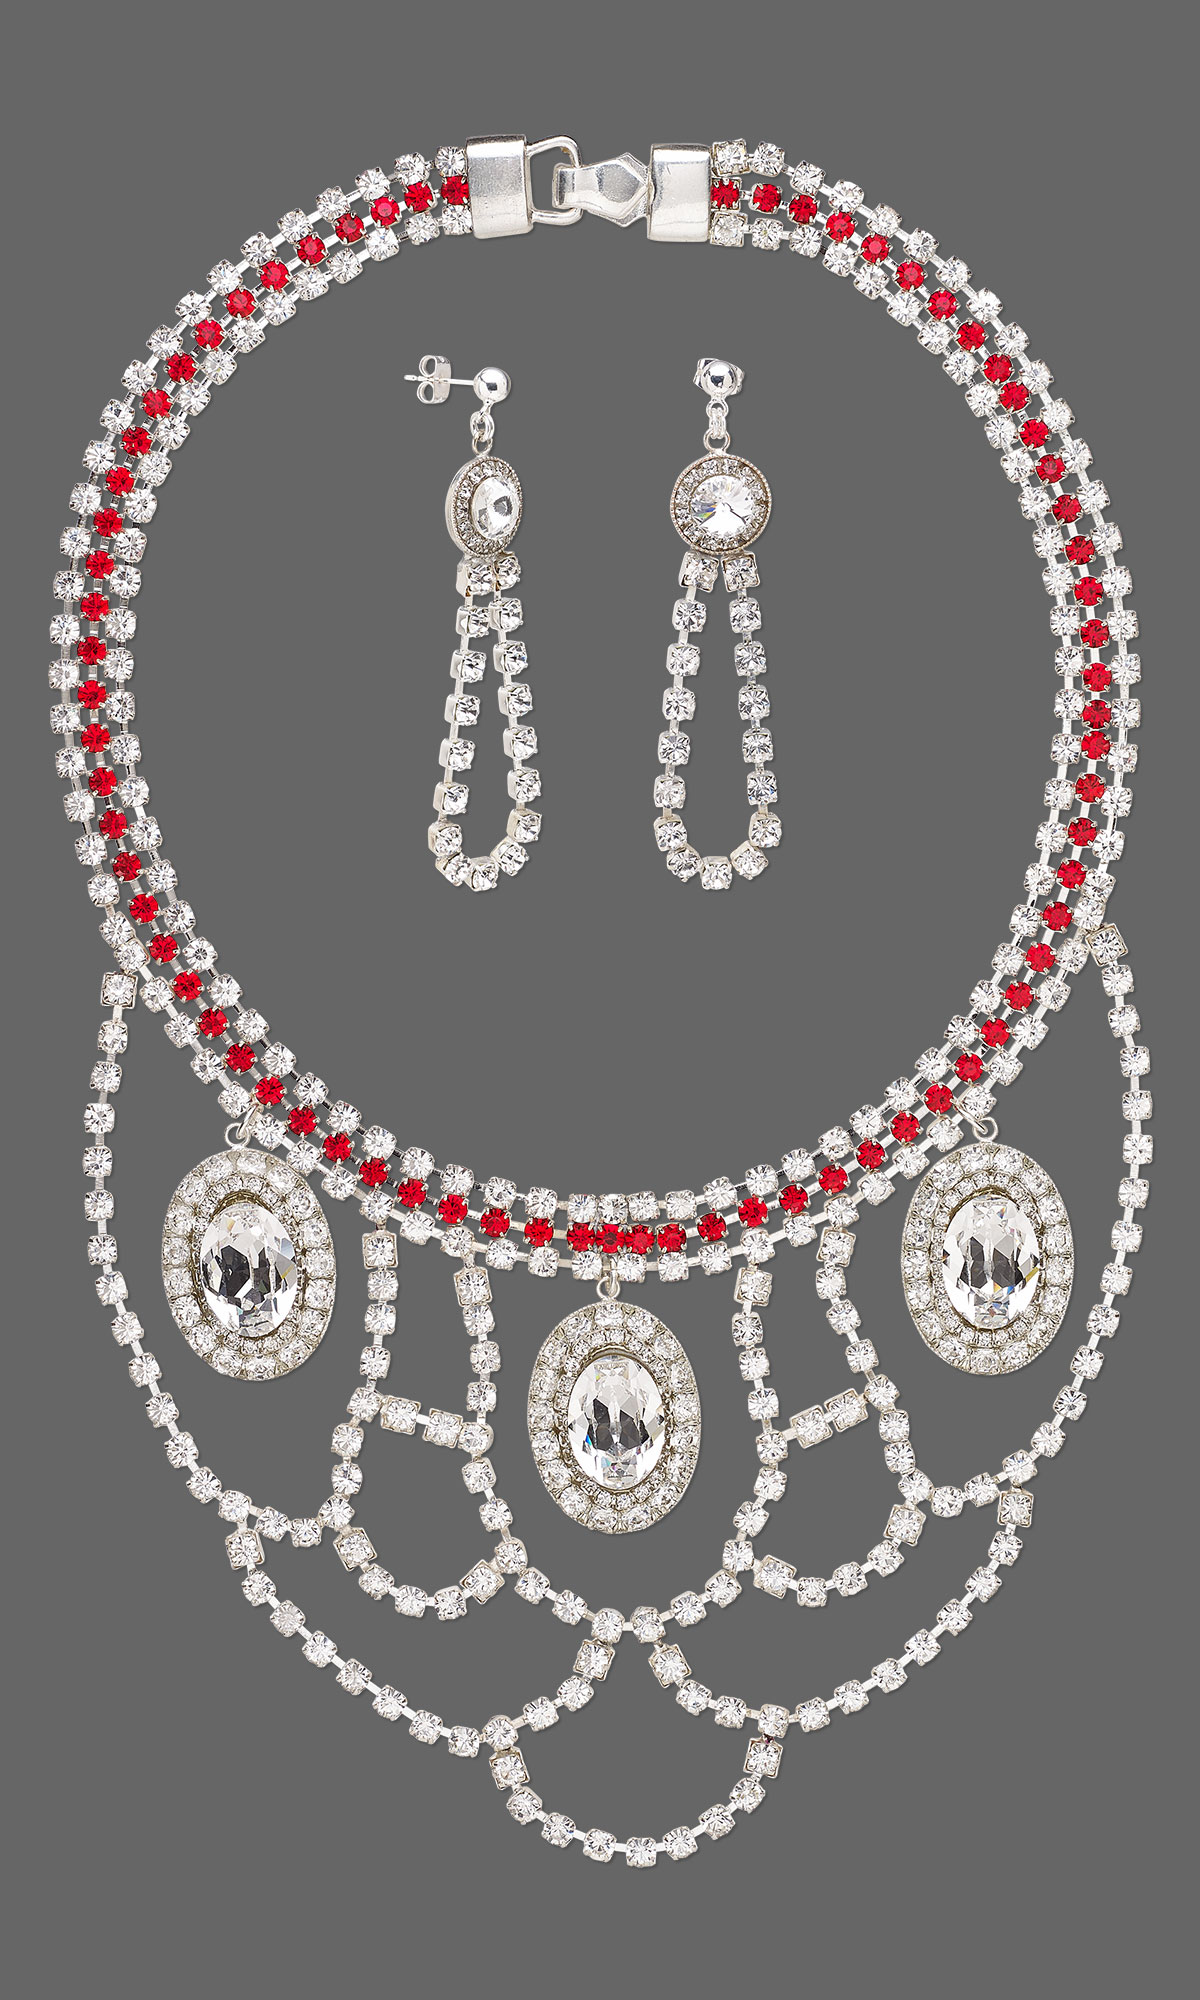 Jewelry Design Bib Style Necklace And Earring Set With